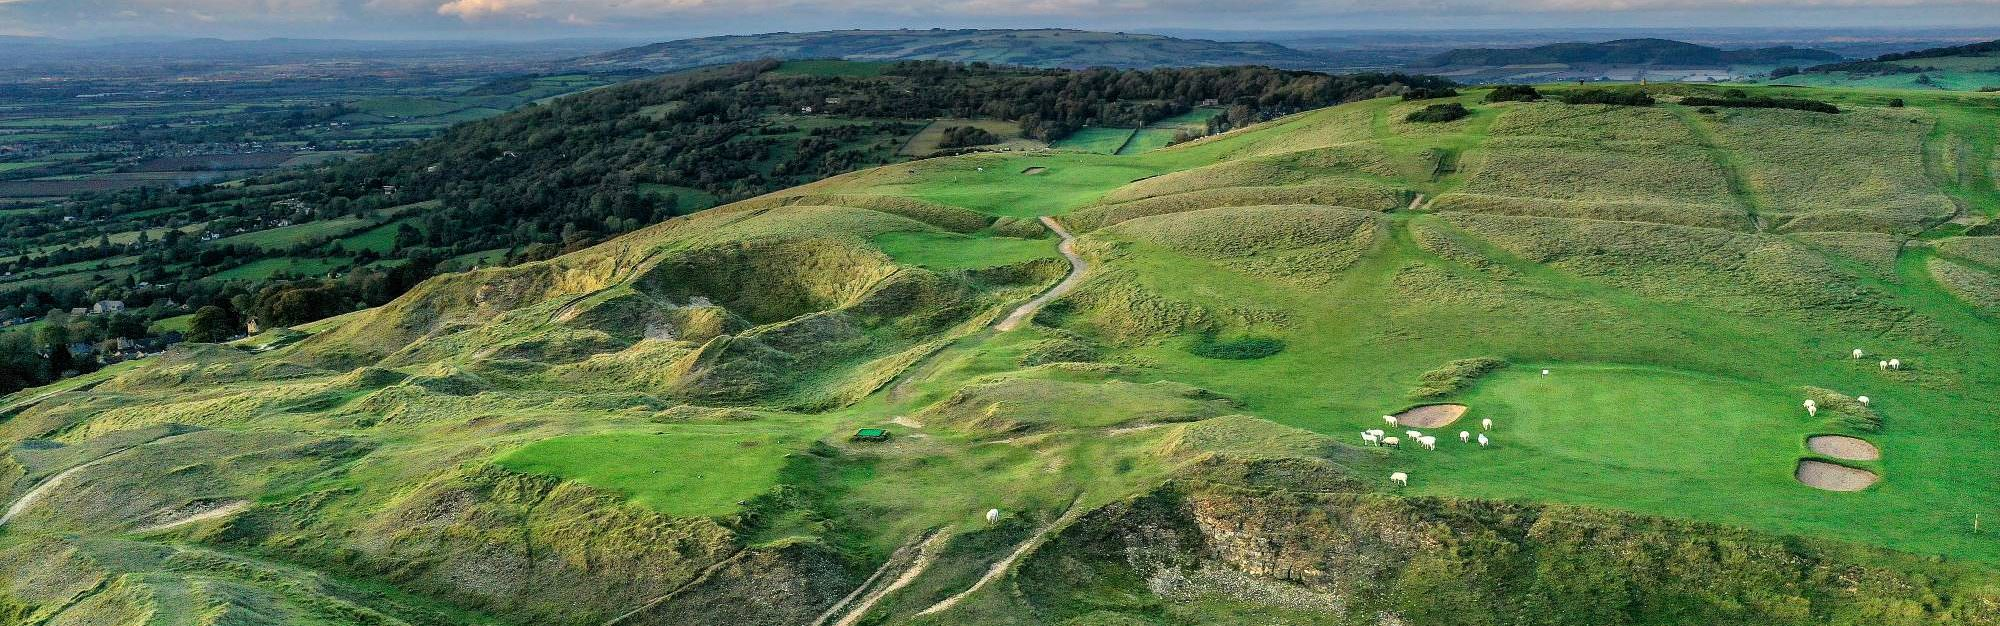 'There is still a significant appetite for golf': The fight to save Cleeve Hill clears first hurdle